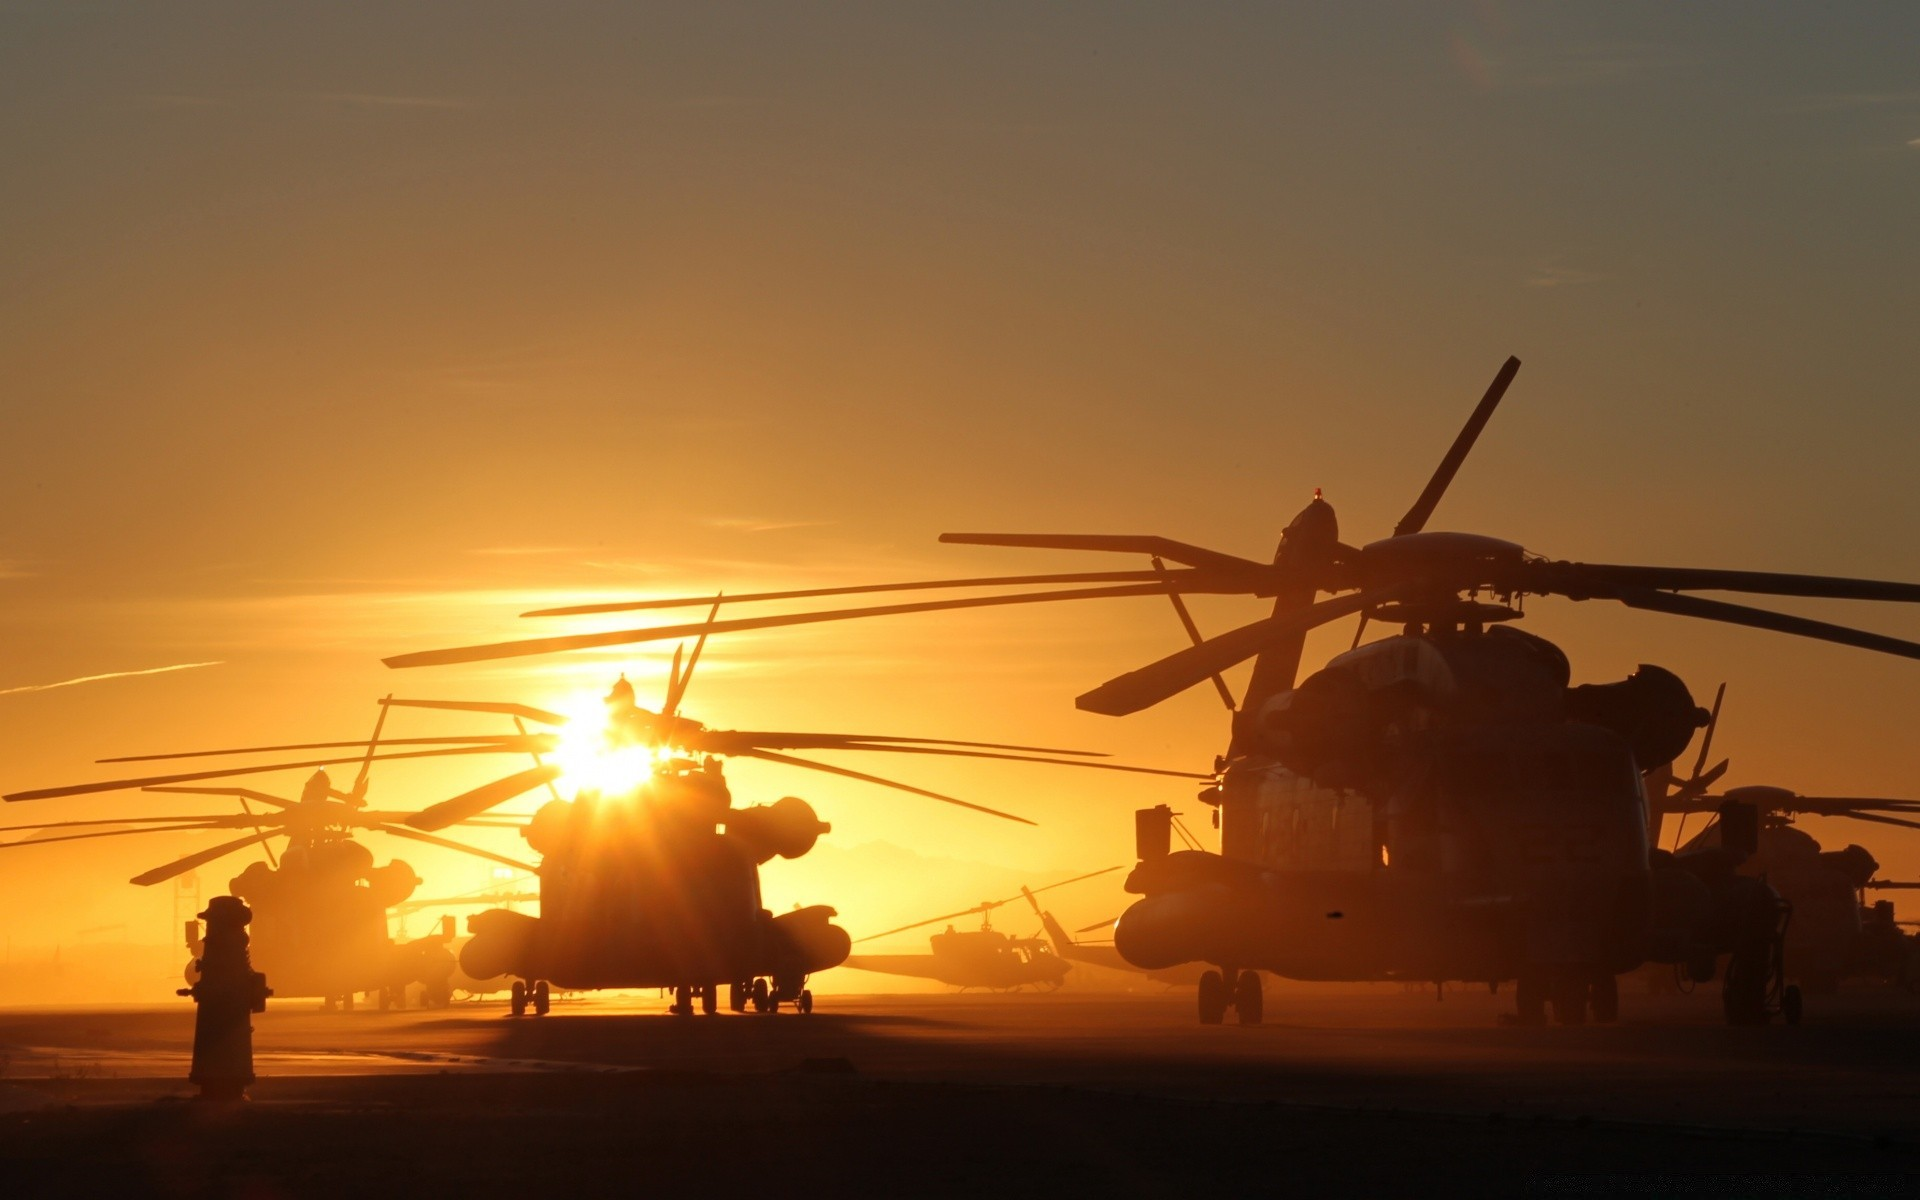 helicopters at sunset. android wallpapers for free.